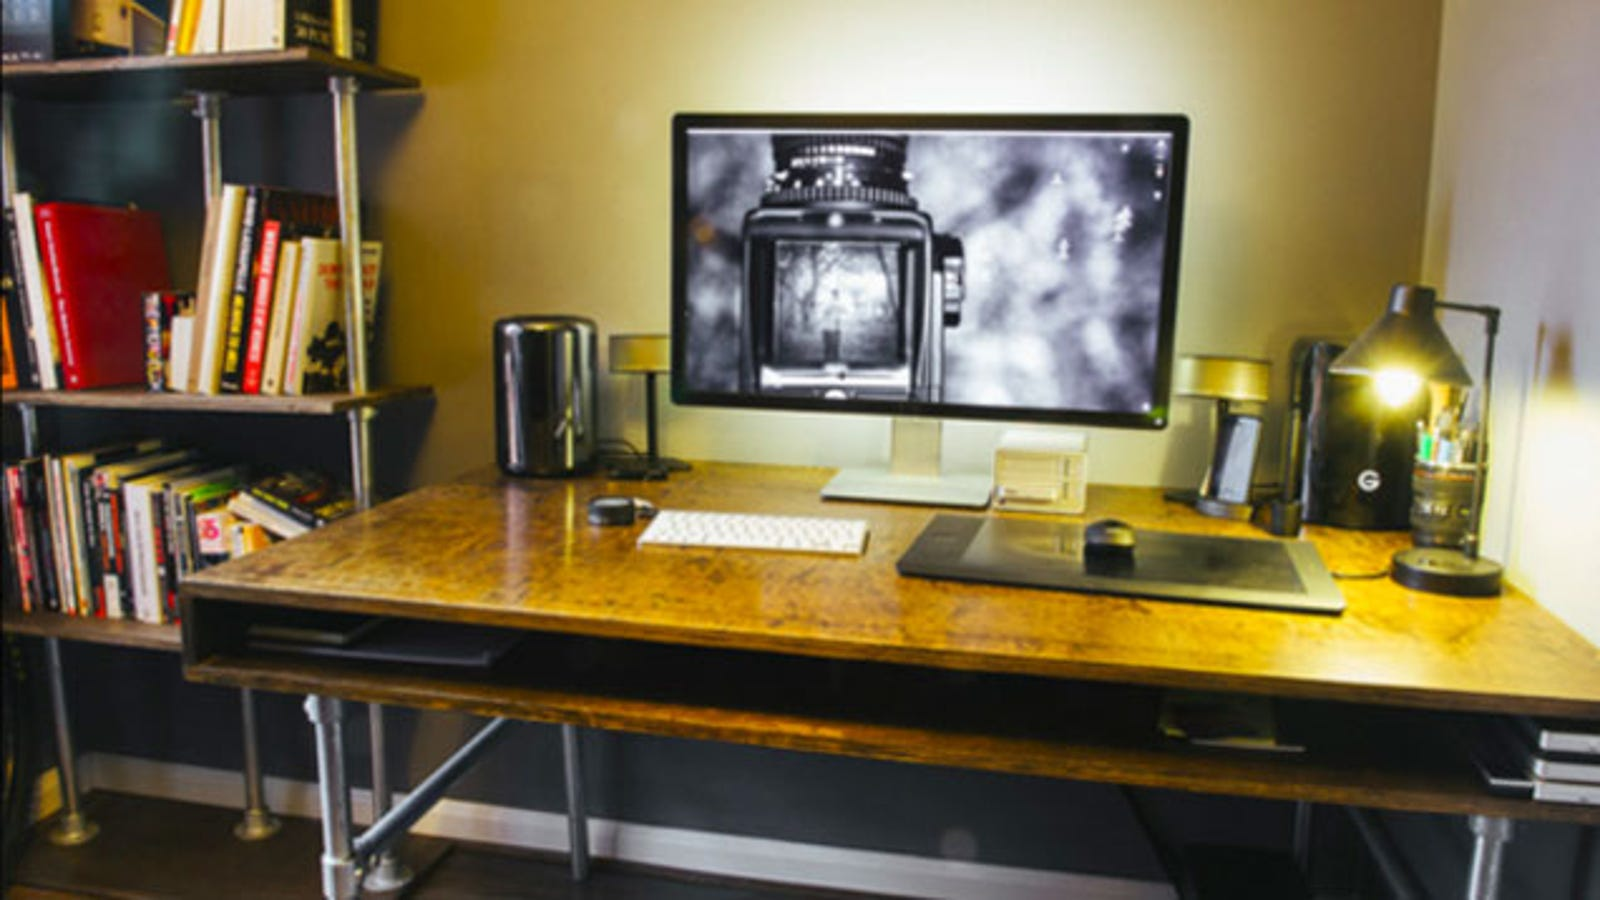 The Diy Clutter Free Photo Editing Workspace